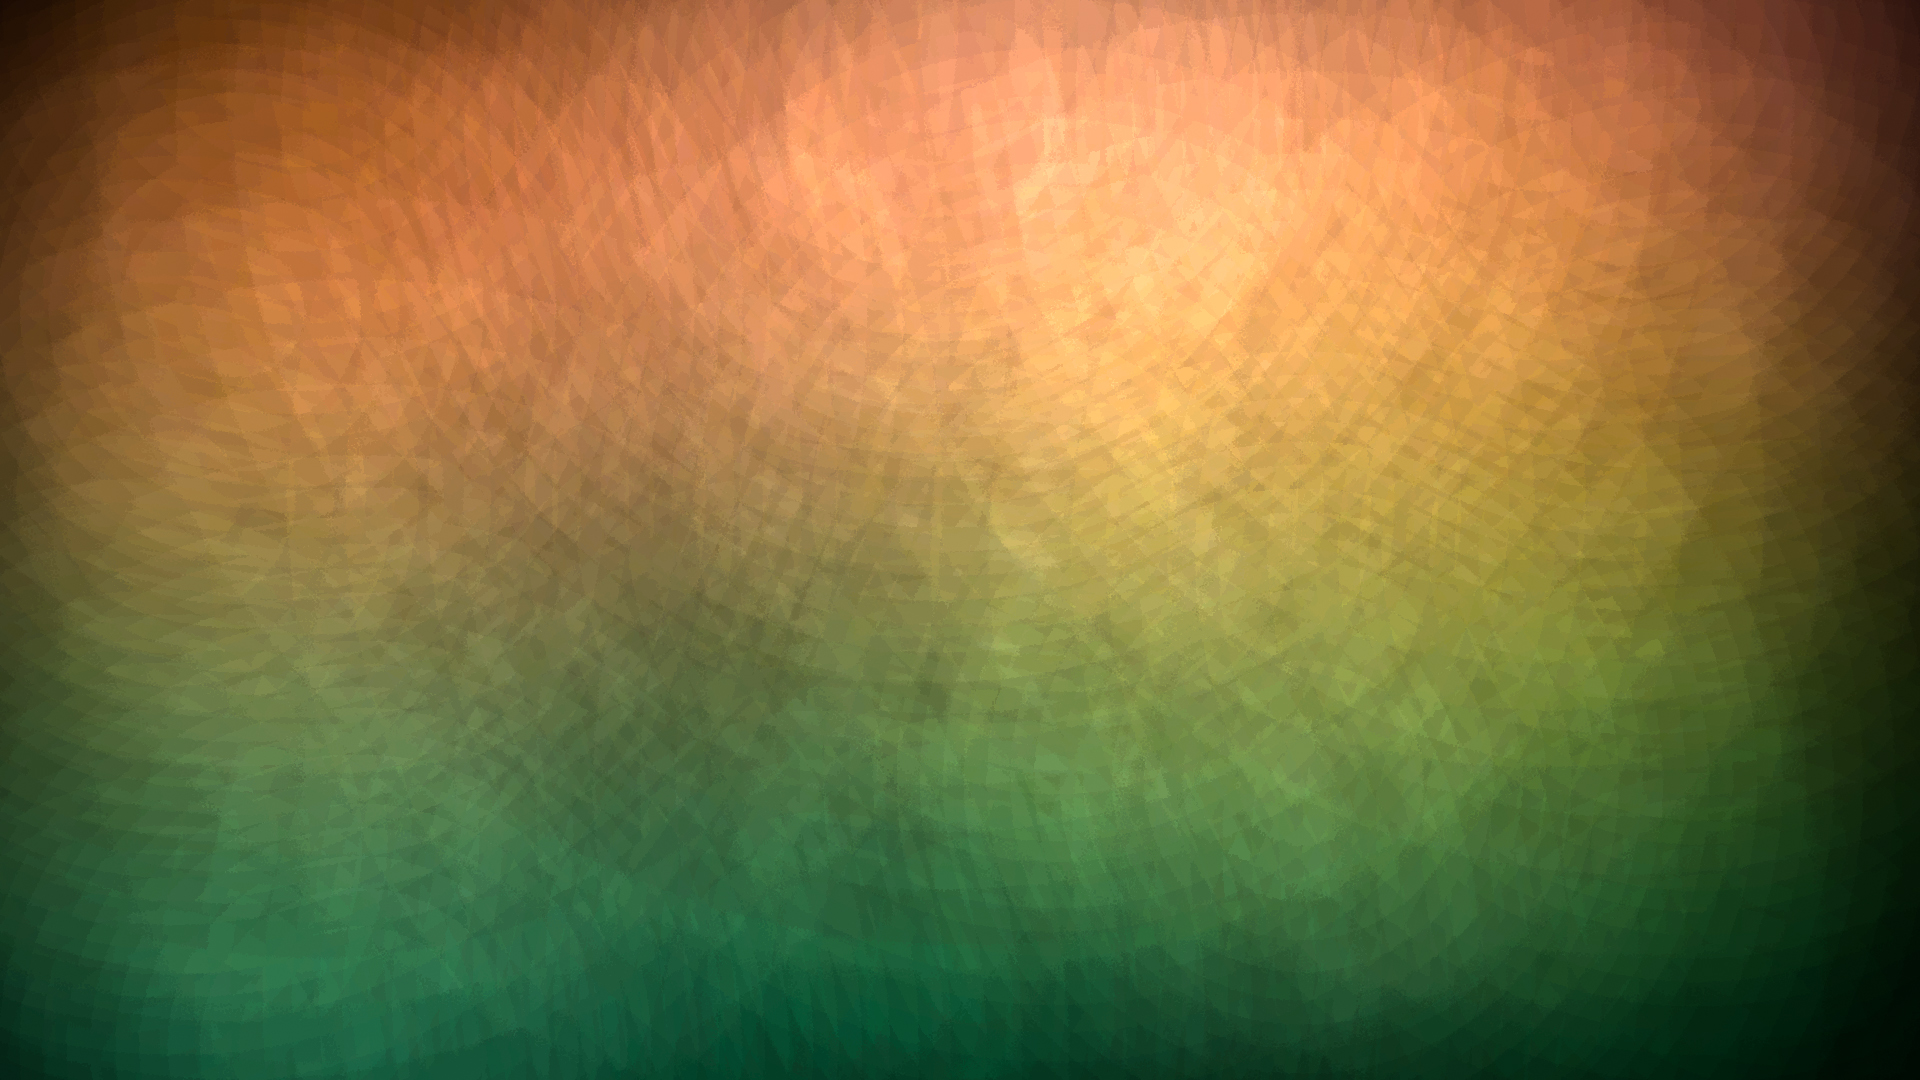 Sold to Spring (free texture/wallpaper) by remixatlantic on